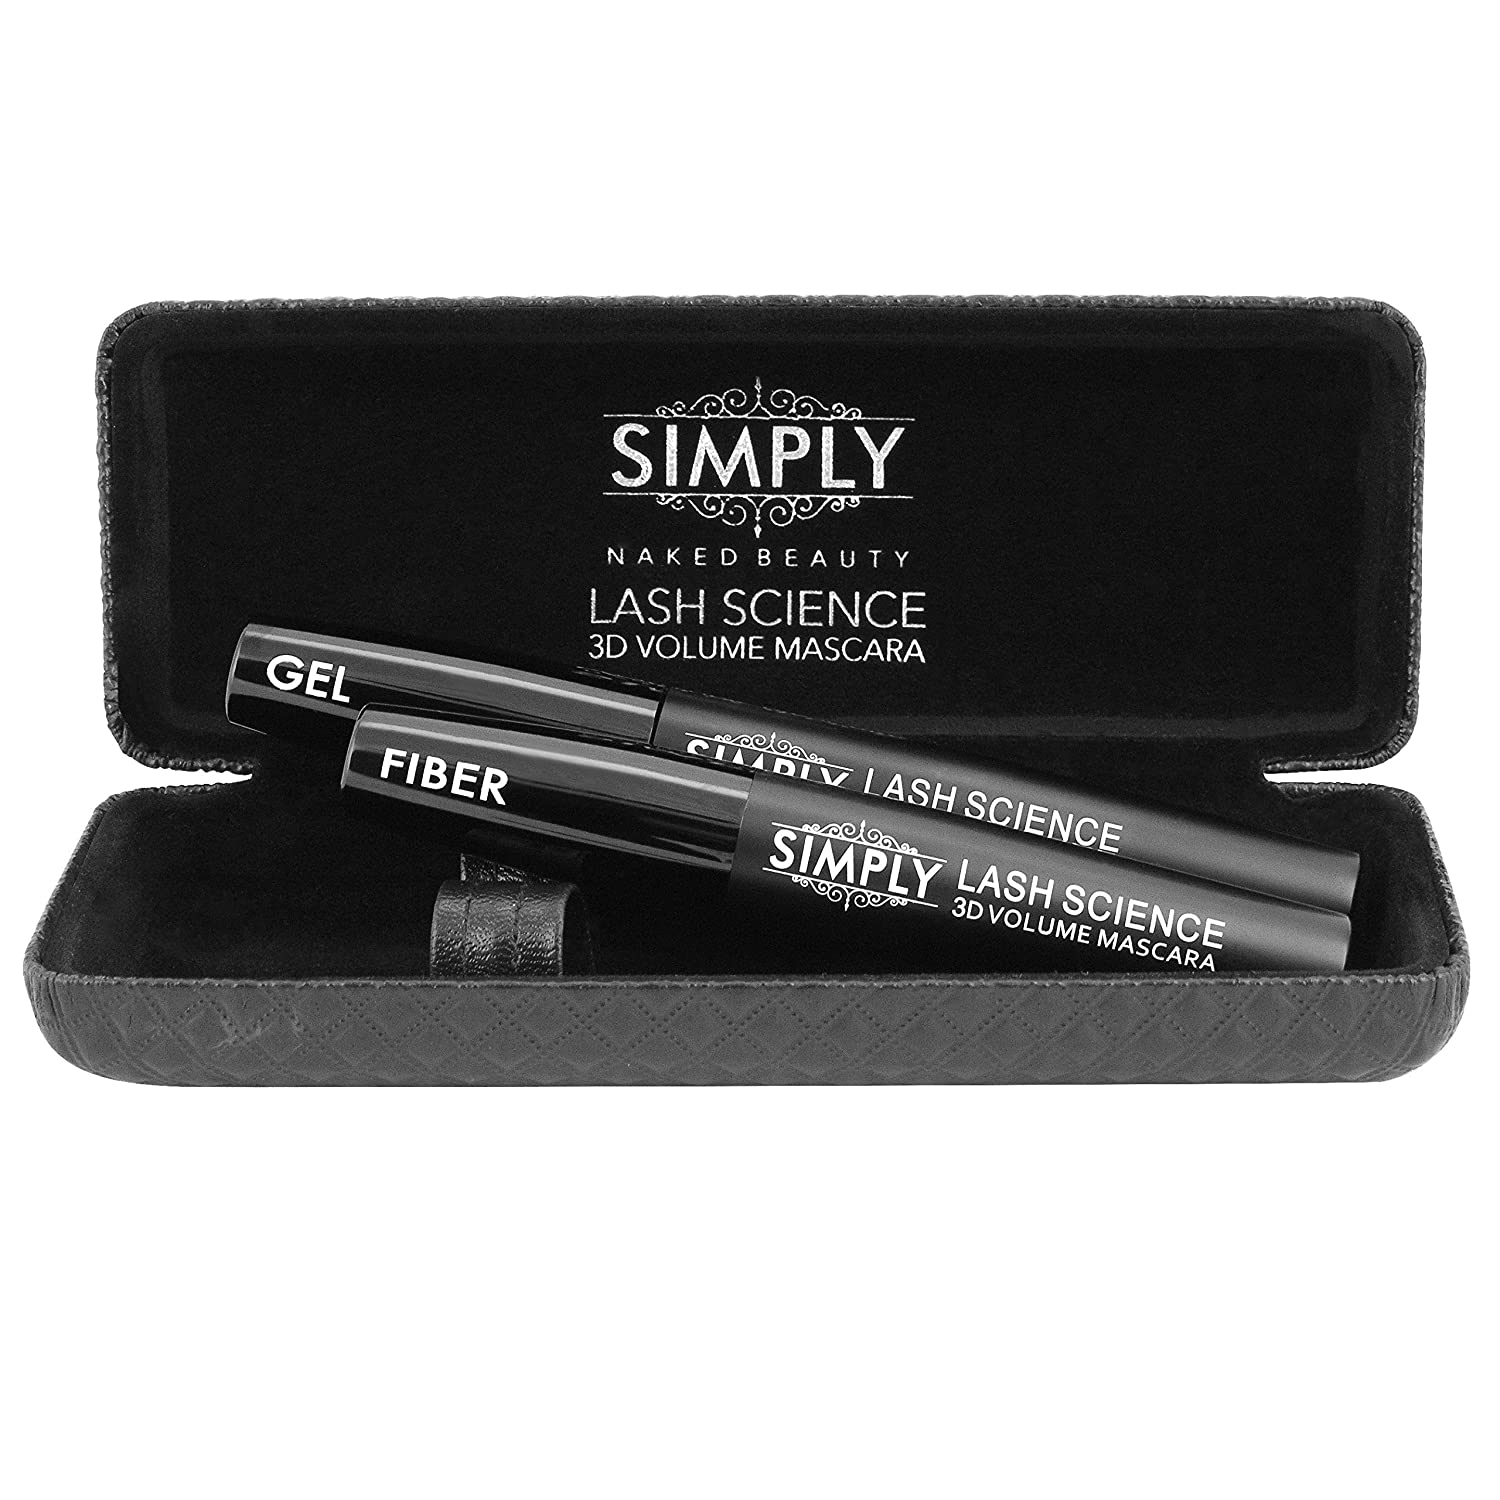 Best 3d Fiber Lash Mascara by Simply Naked Beauty. Last All Day, waterproof, smudge proof & hypoallergenic ingredients. High quality non-toxic and natural. Midnight Black